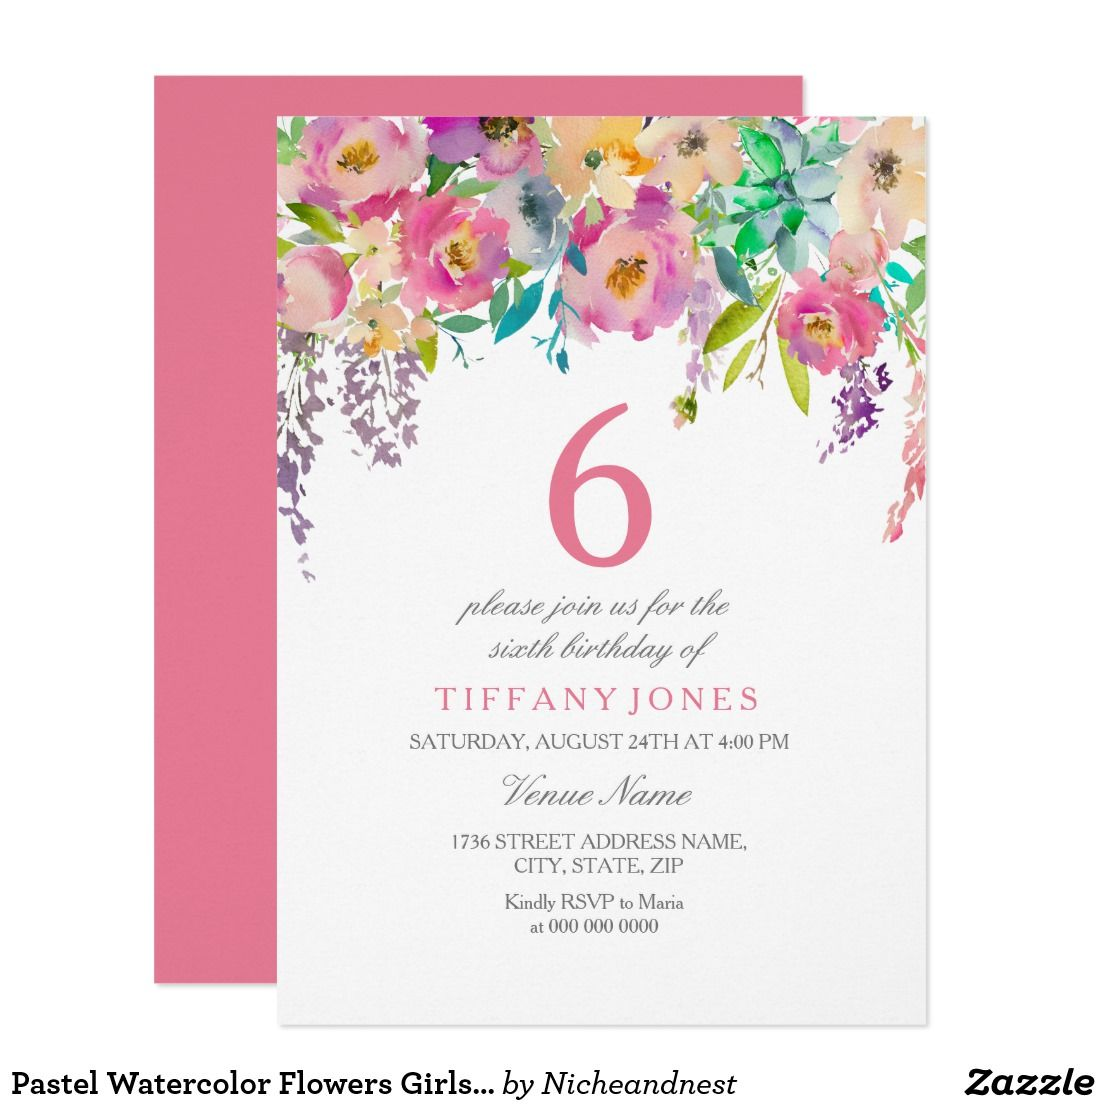 Pastel Watercolor Flowers Girls 6th Birthday Party Invitation ...